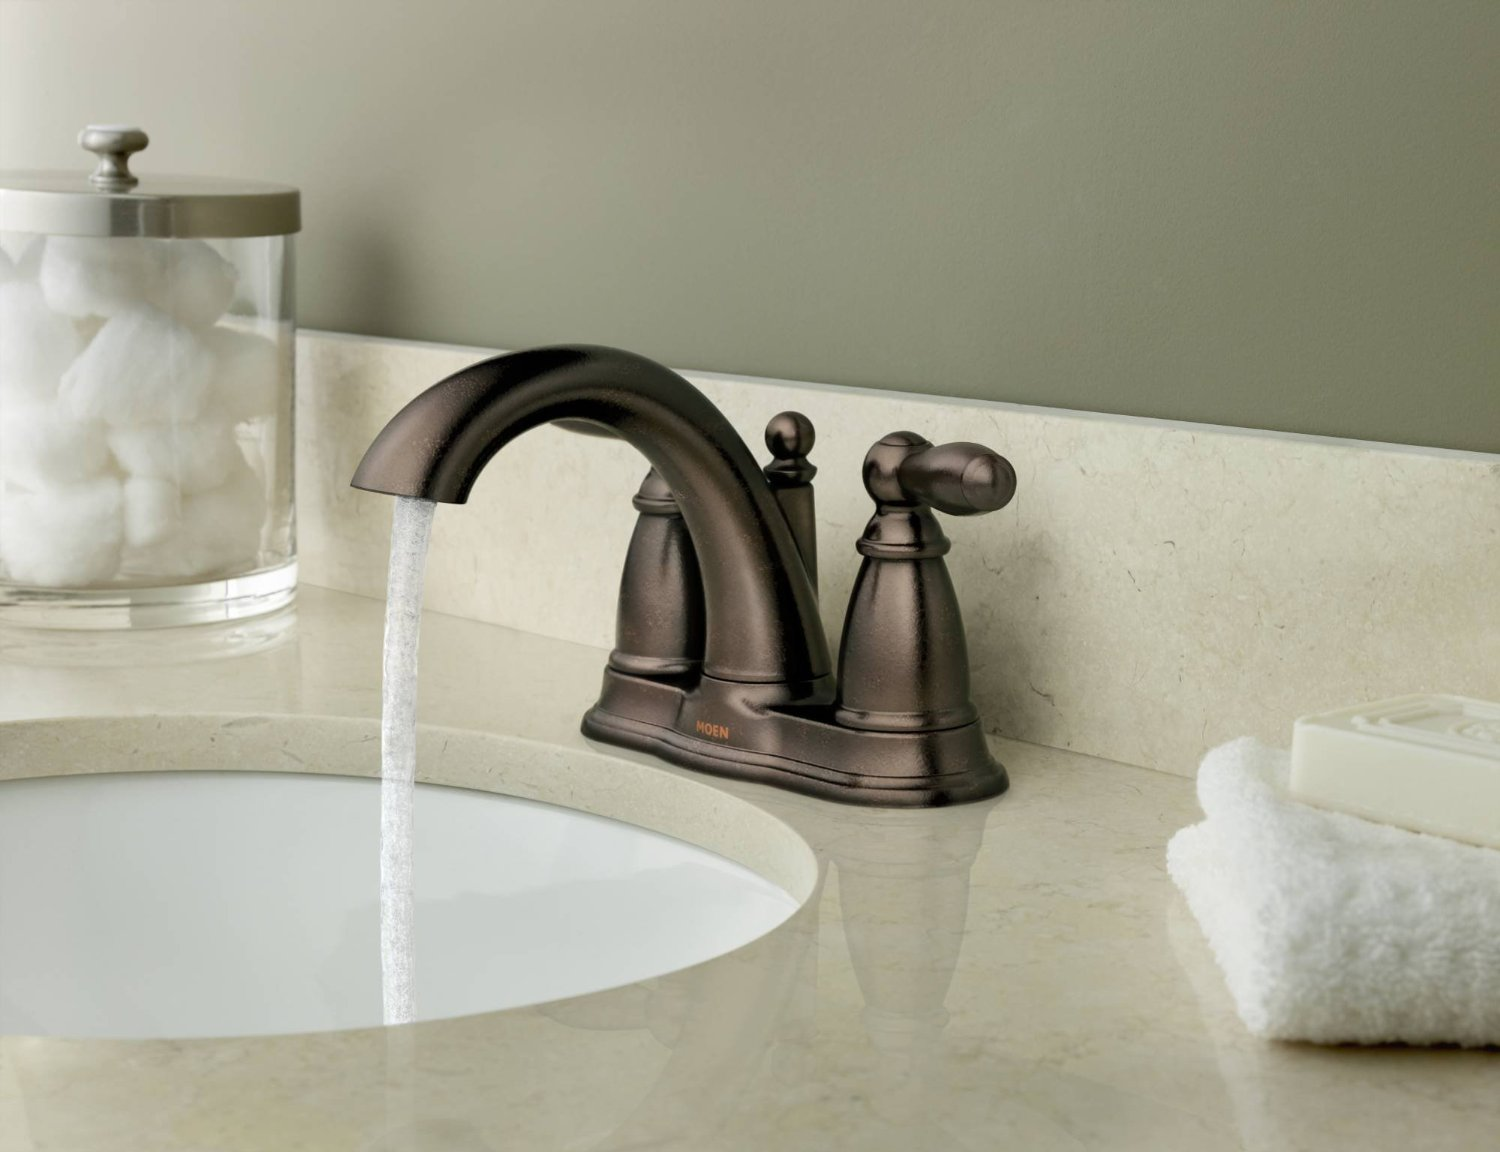 Best faucets for bathrooms - Best Faucets For Bathrooms 1